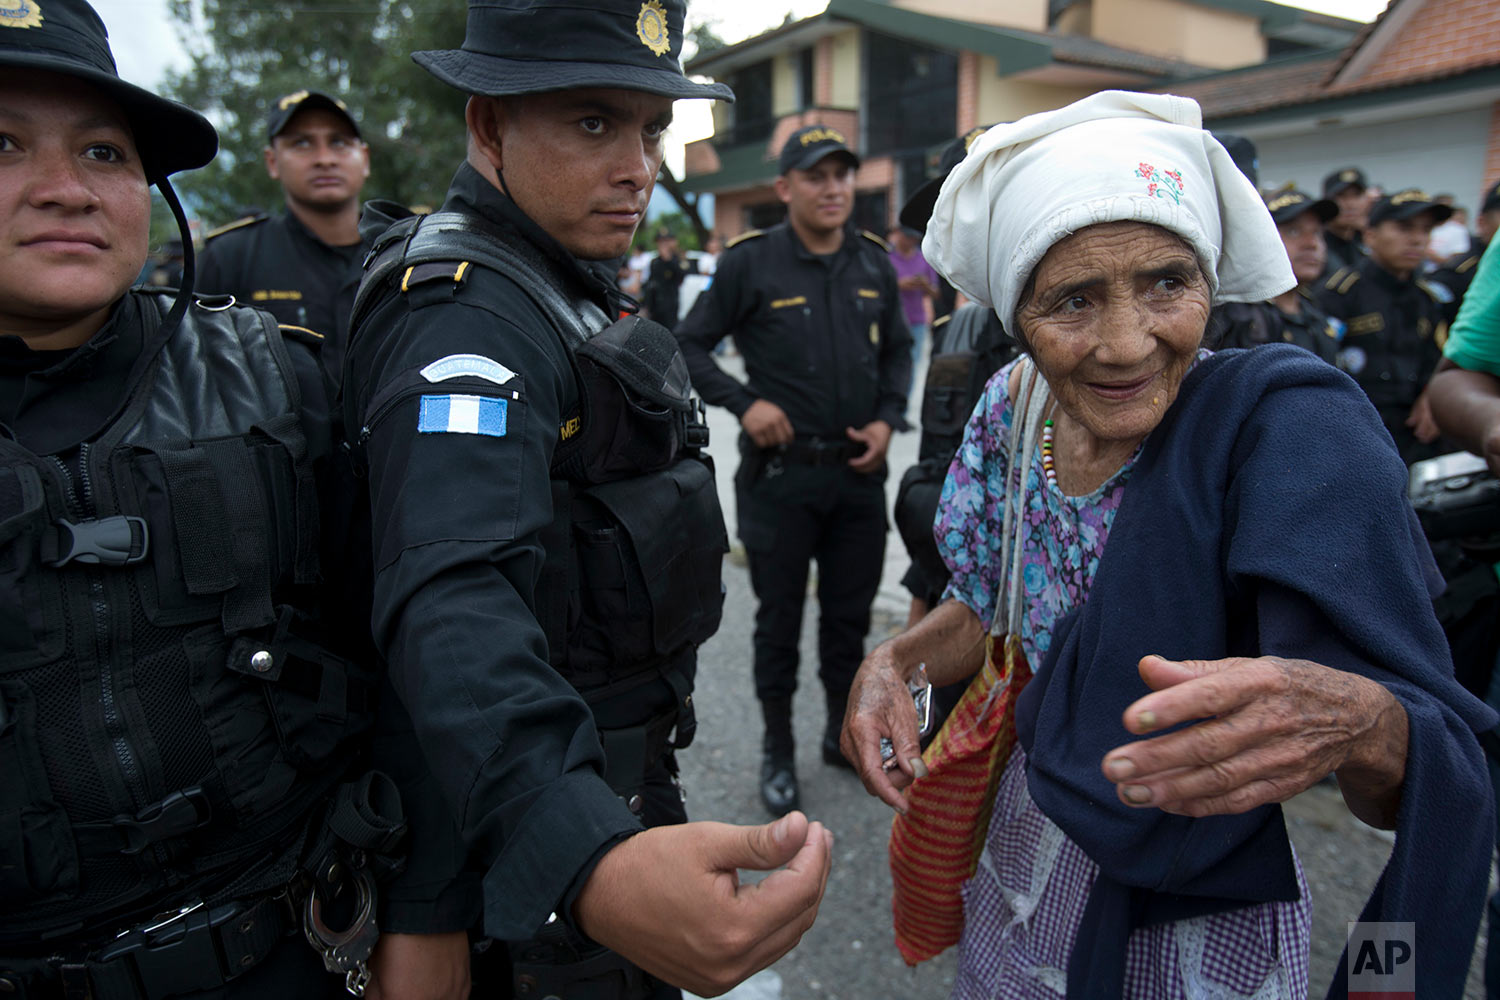 An elderly Honduran migrant woman talks with Guatemalan police who temporarily block the road to keep her and her caravan from advancing, in Esquipulas, Guatemala, Monday, Oct. 15, 2018. (AP Photo/Moises Castillo)